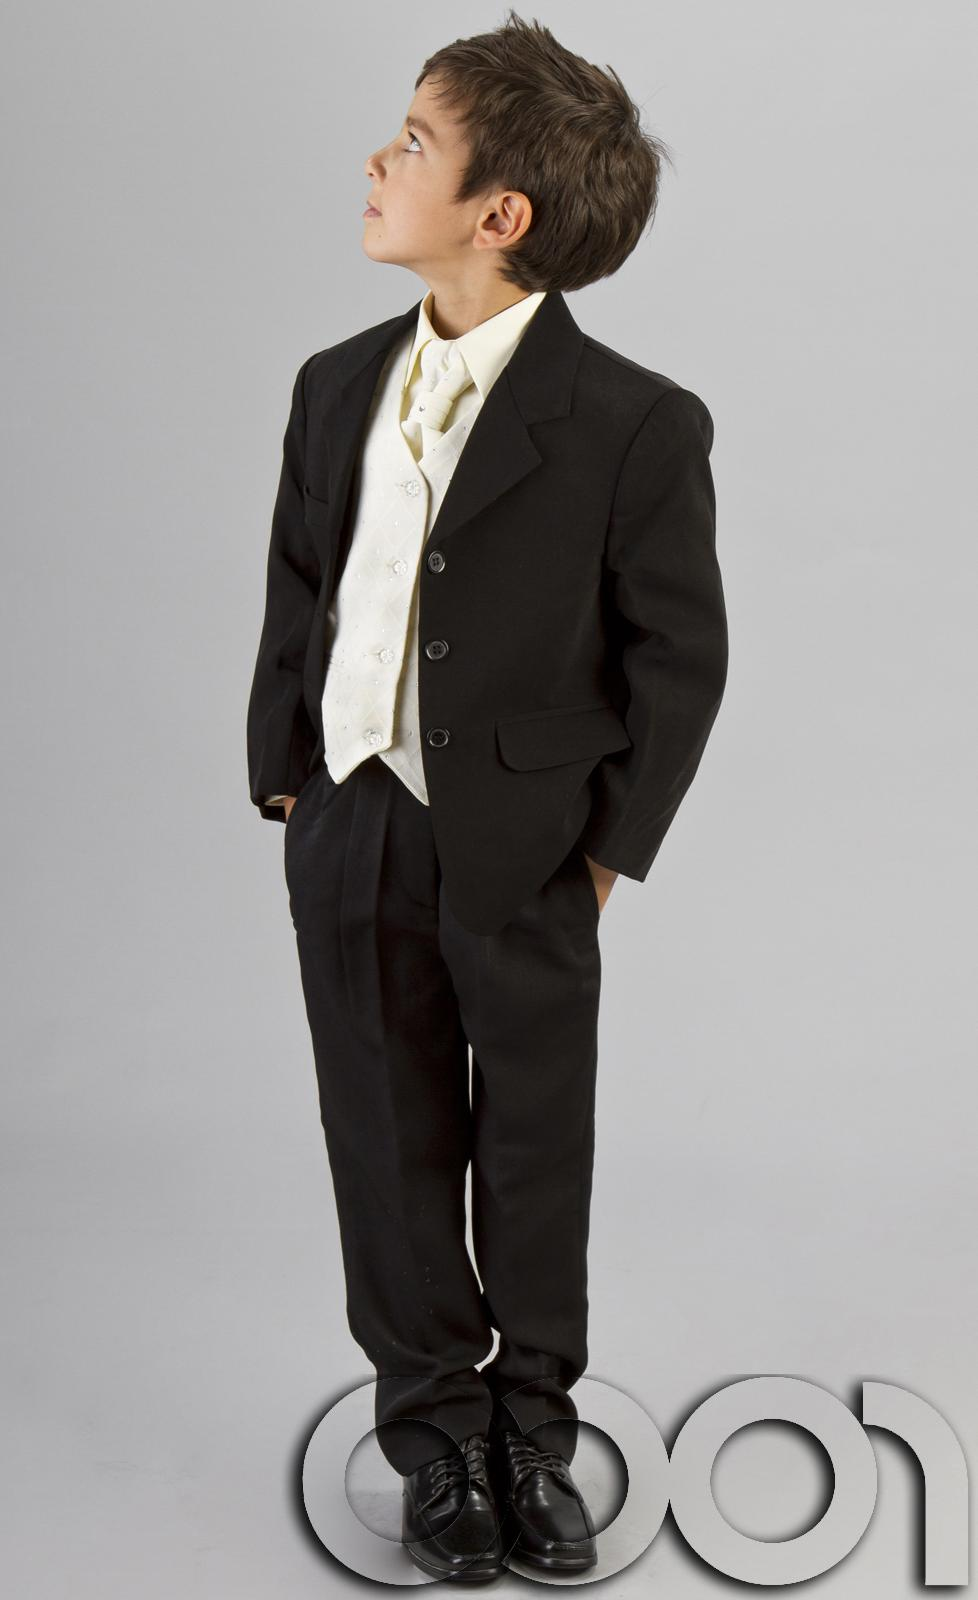 BOYS SUITS BLACK IVORY 5 PIECE WEDDING 3-6M TO 14YRS   eBay